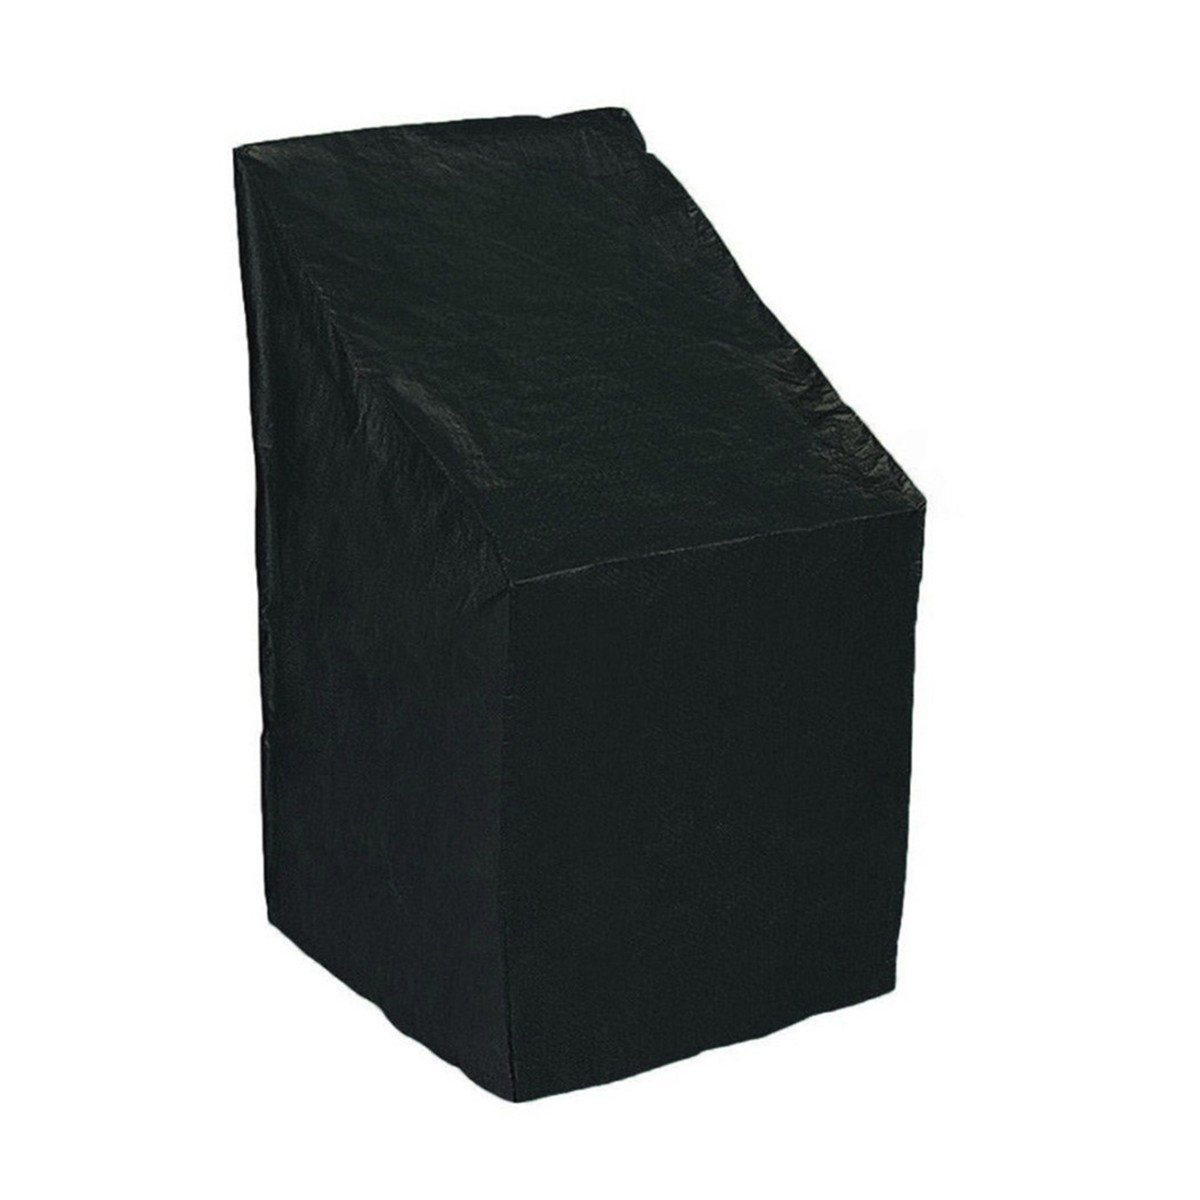 Waterproof Chair Cover Garden Outdoor Patio Furniture Luggage Protective Covers ECYC